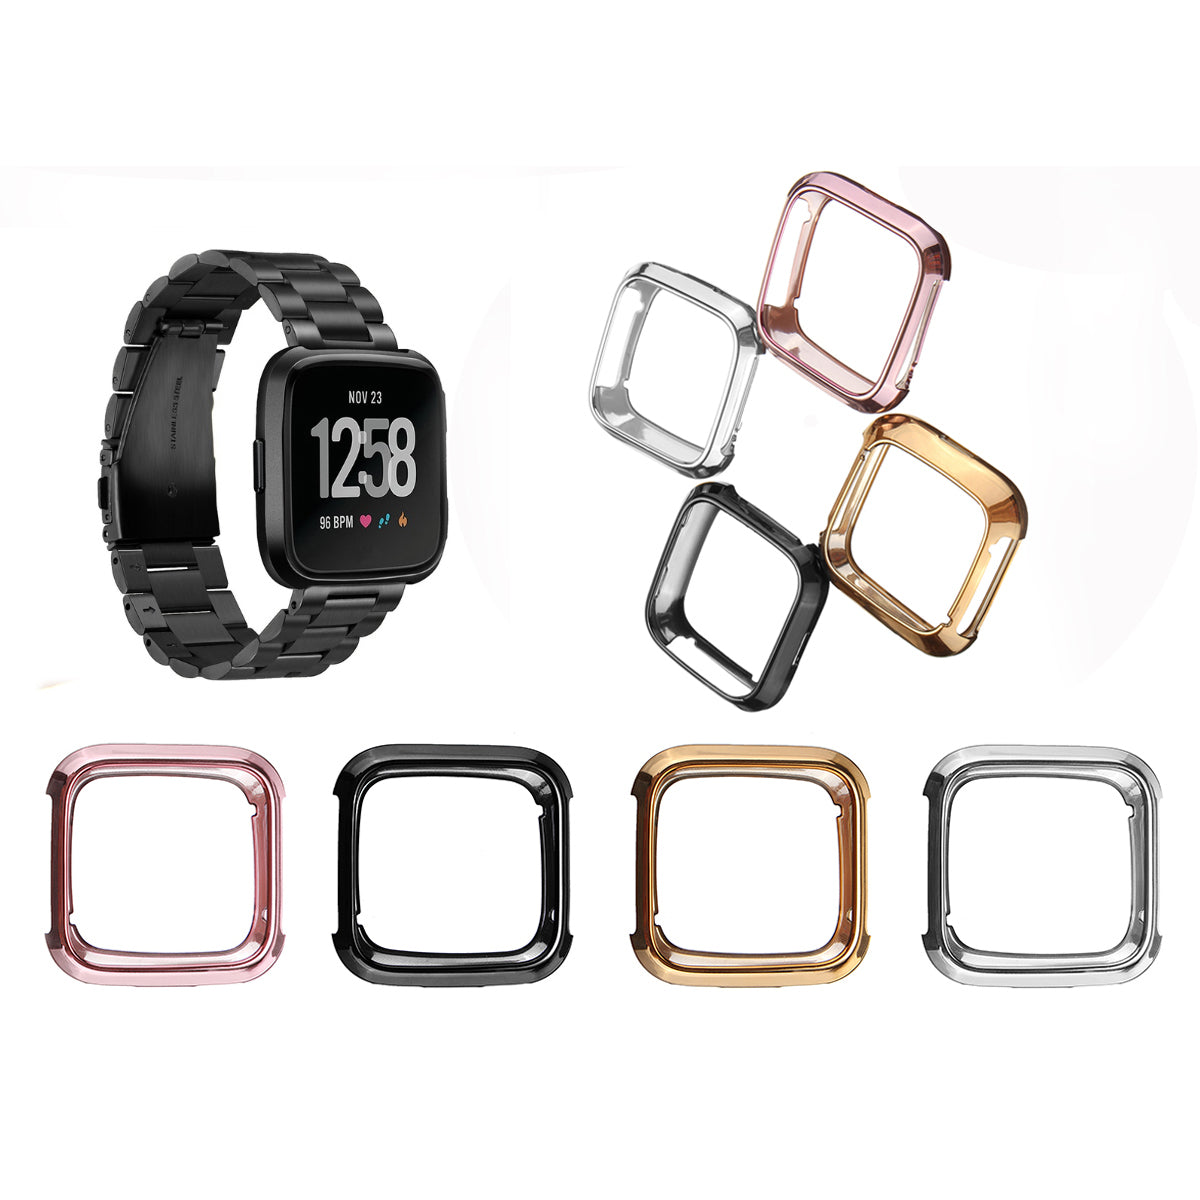 Fitbit Versa Shell Case Screen Protector Frame Cover Smart Watch Cover For Fitbit Versa Silicone Protective